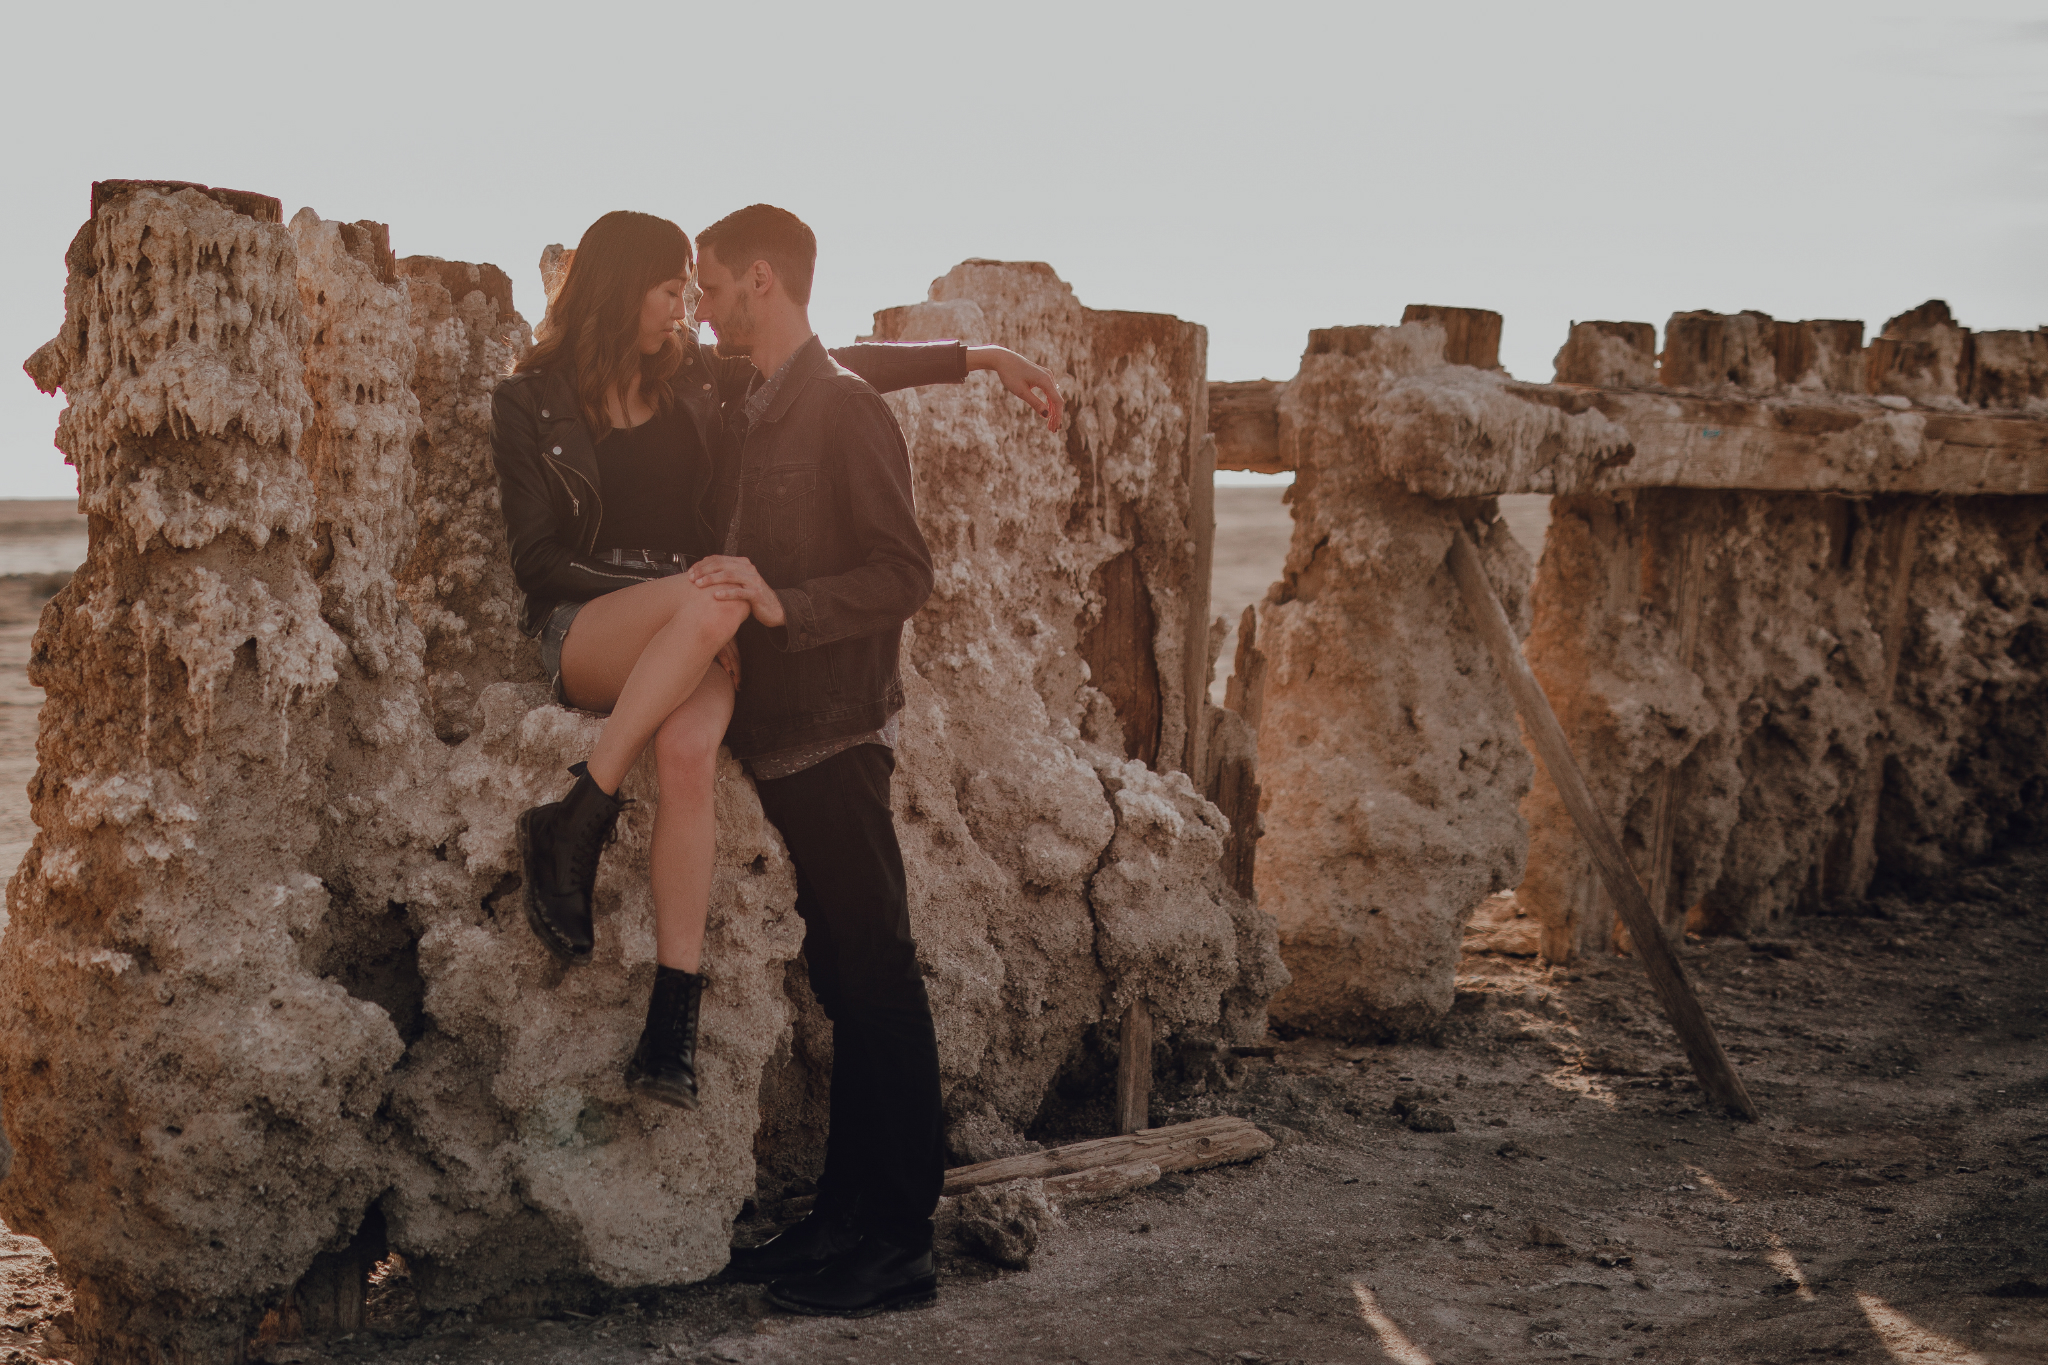 san diego wedding   photographer | woman sitting on sand formation stuck on wooden fence with her   hand on man's shoulder